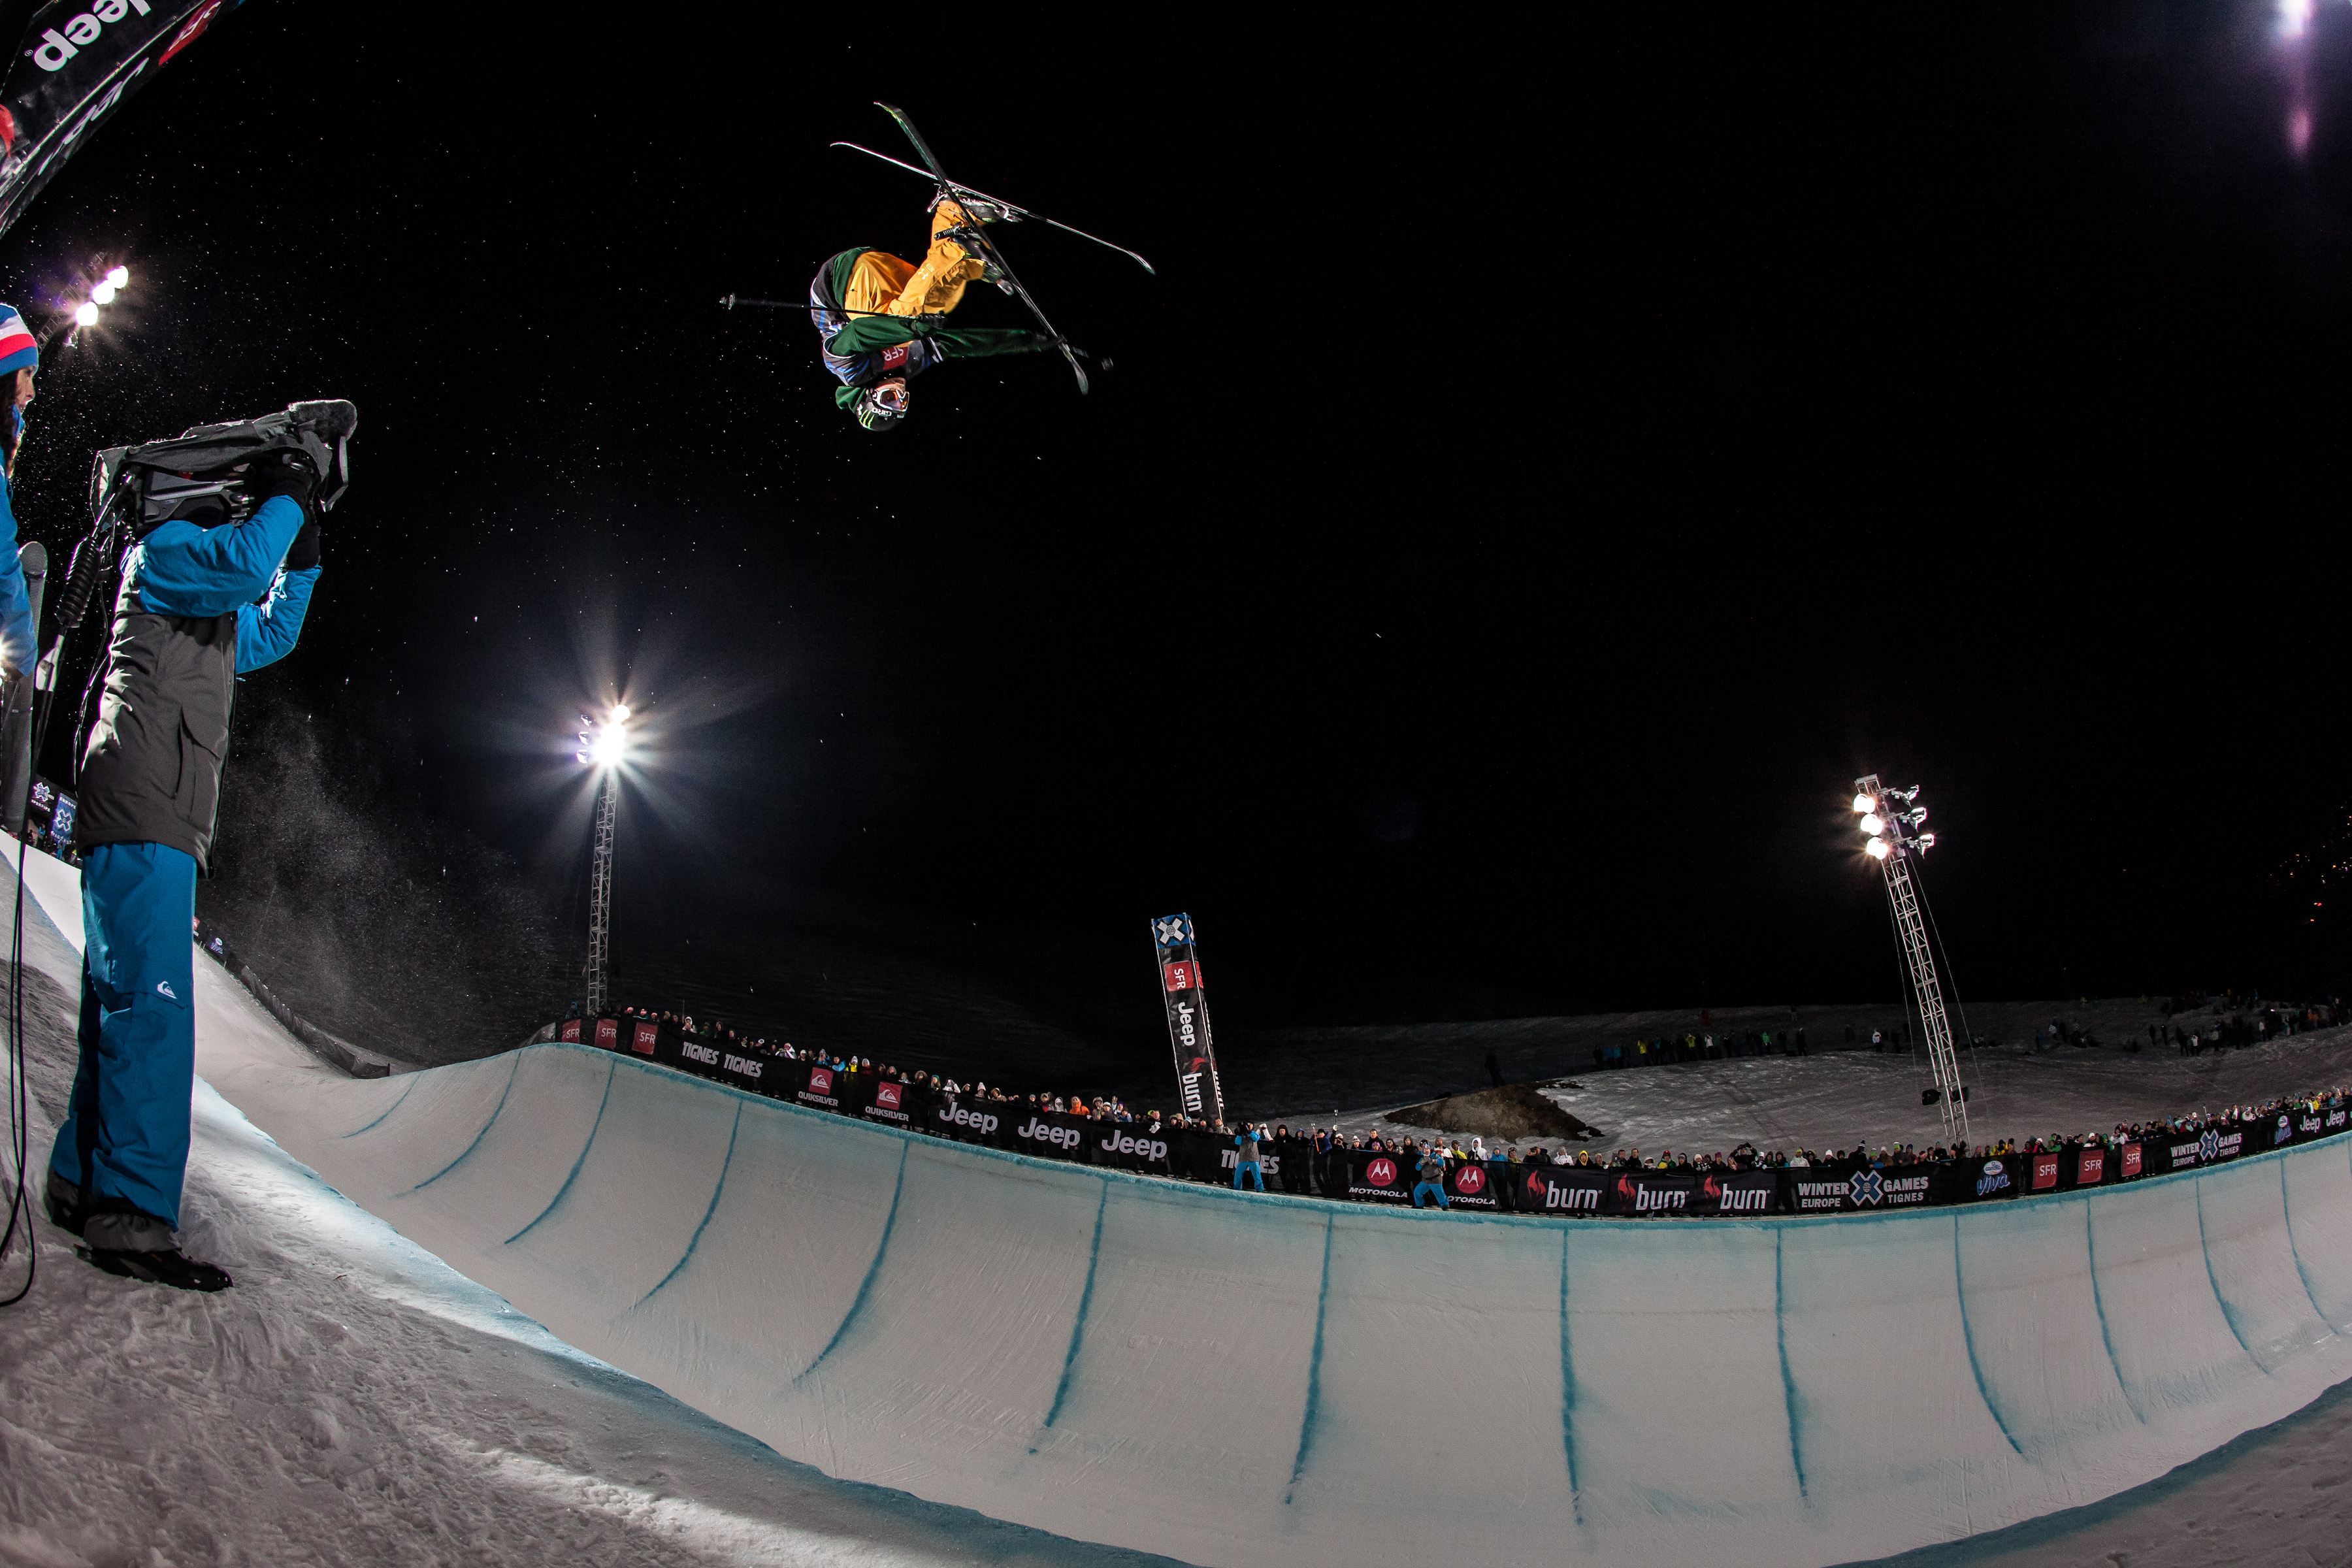 Justin Dorey X Games Tignes 2012 Superpipe - Photo & copyrights by Christian Van Hanja/ESPN Images